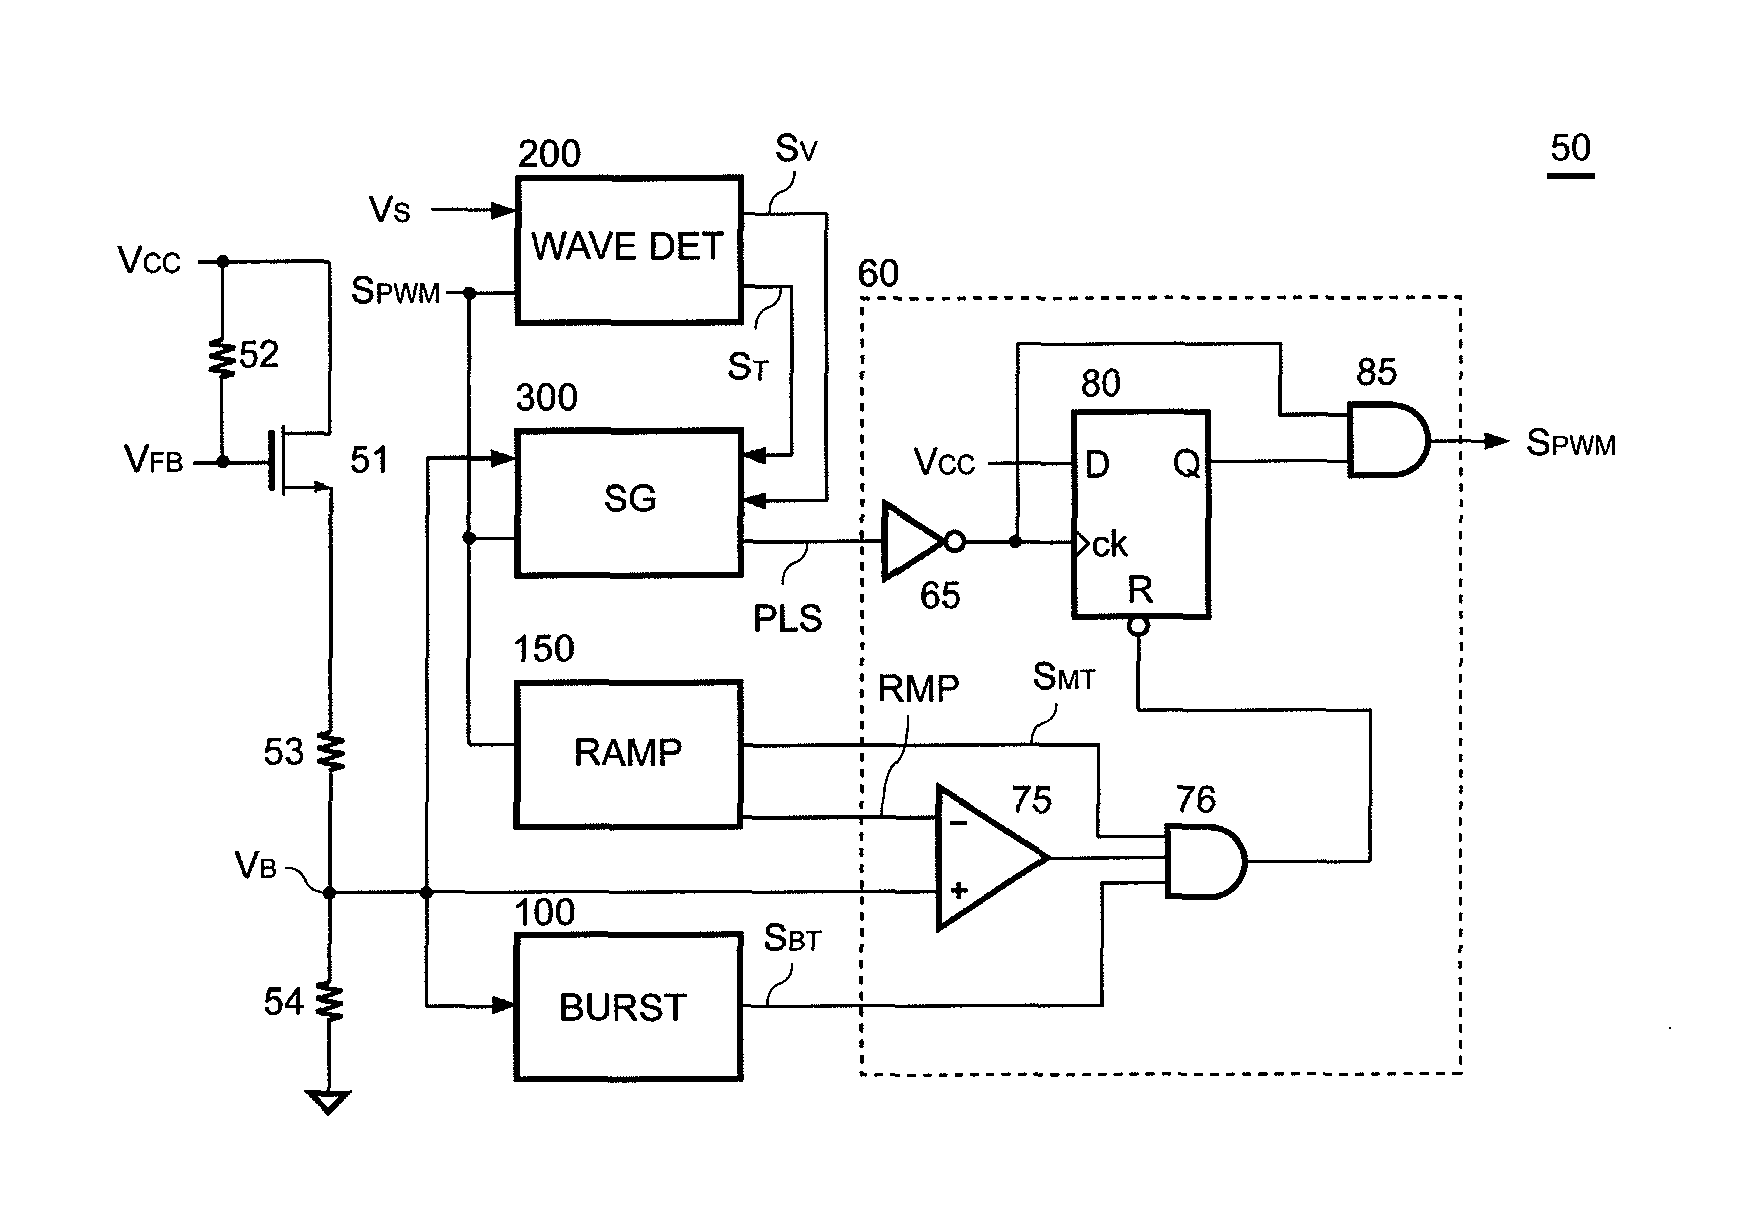 Patent Us8587964 Control Circuit With Burst Mode And Extended Energy Saving Lamp Diagram Controlcircuit Drawing